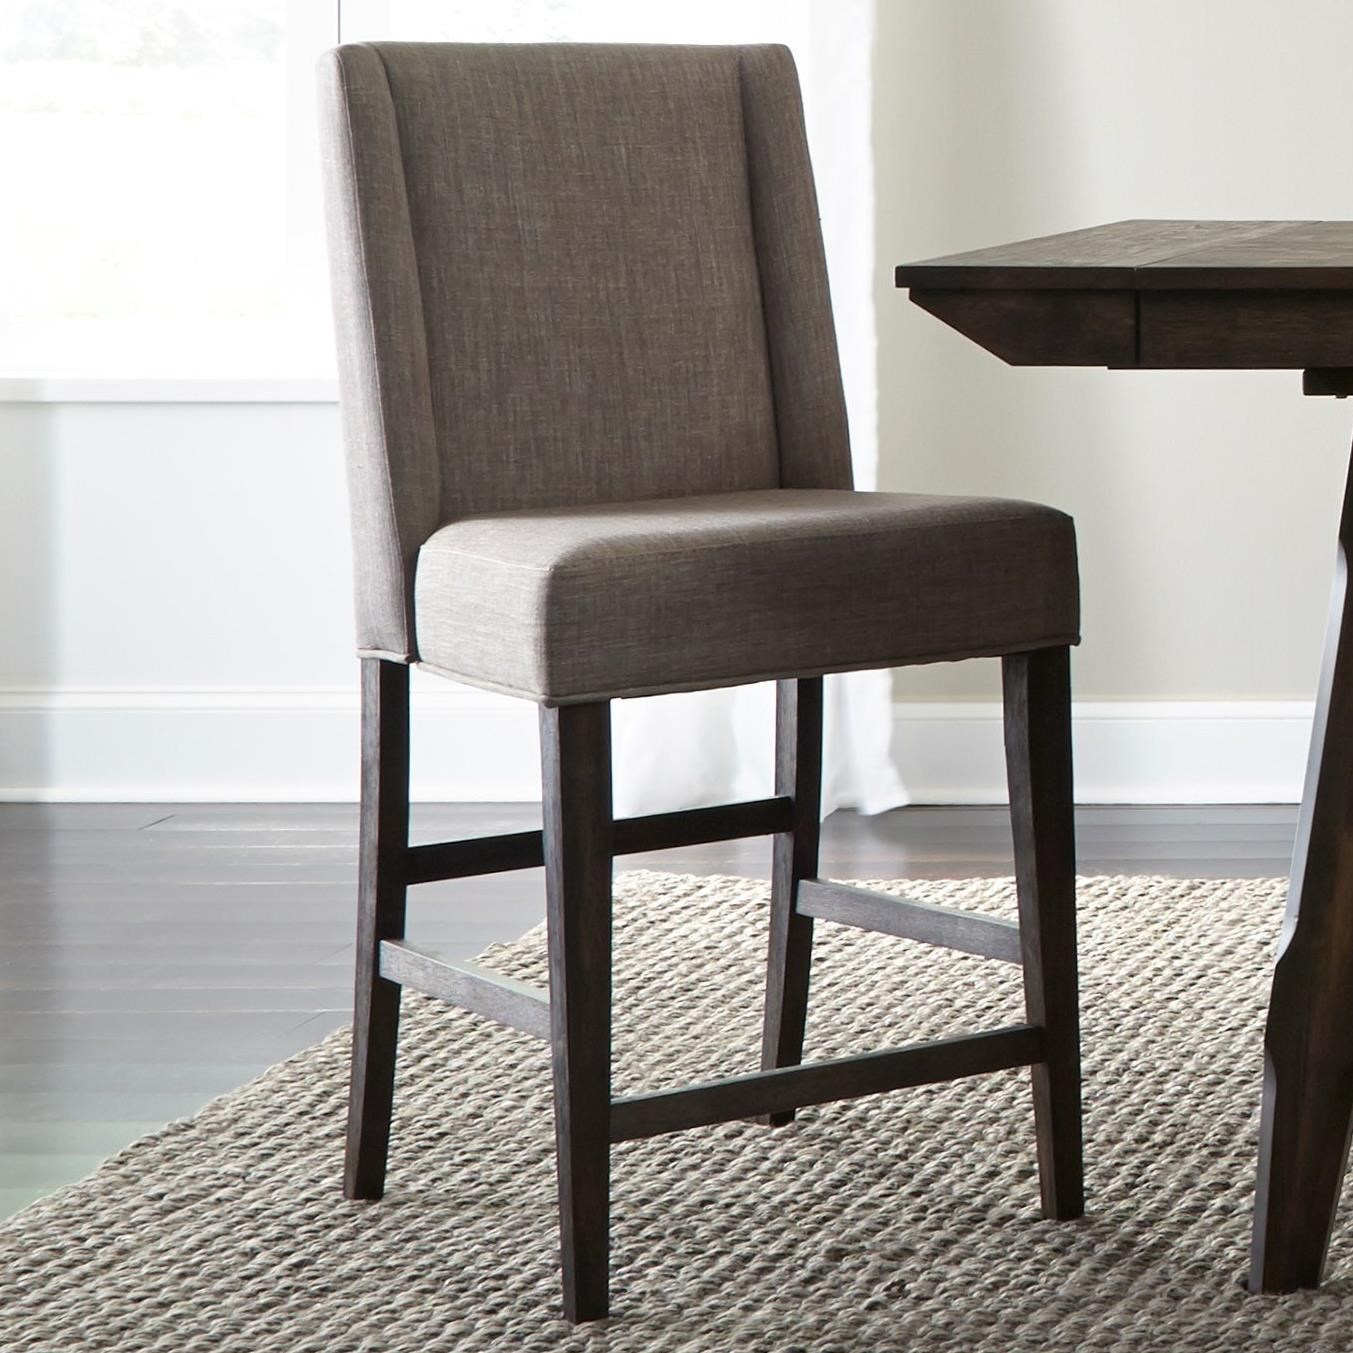 Liberty Furniture Double Bridge Contemporary Upholstered